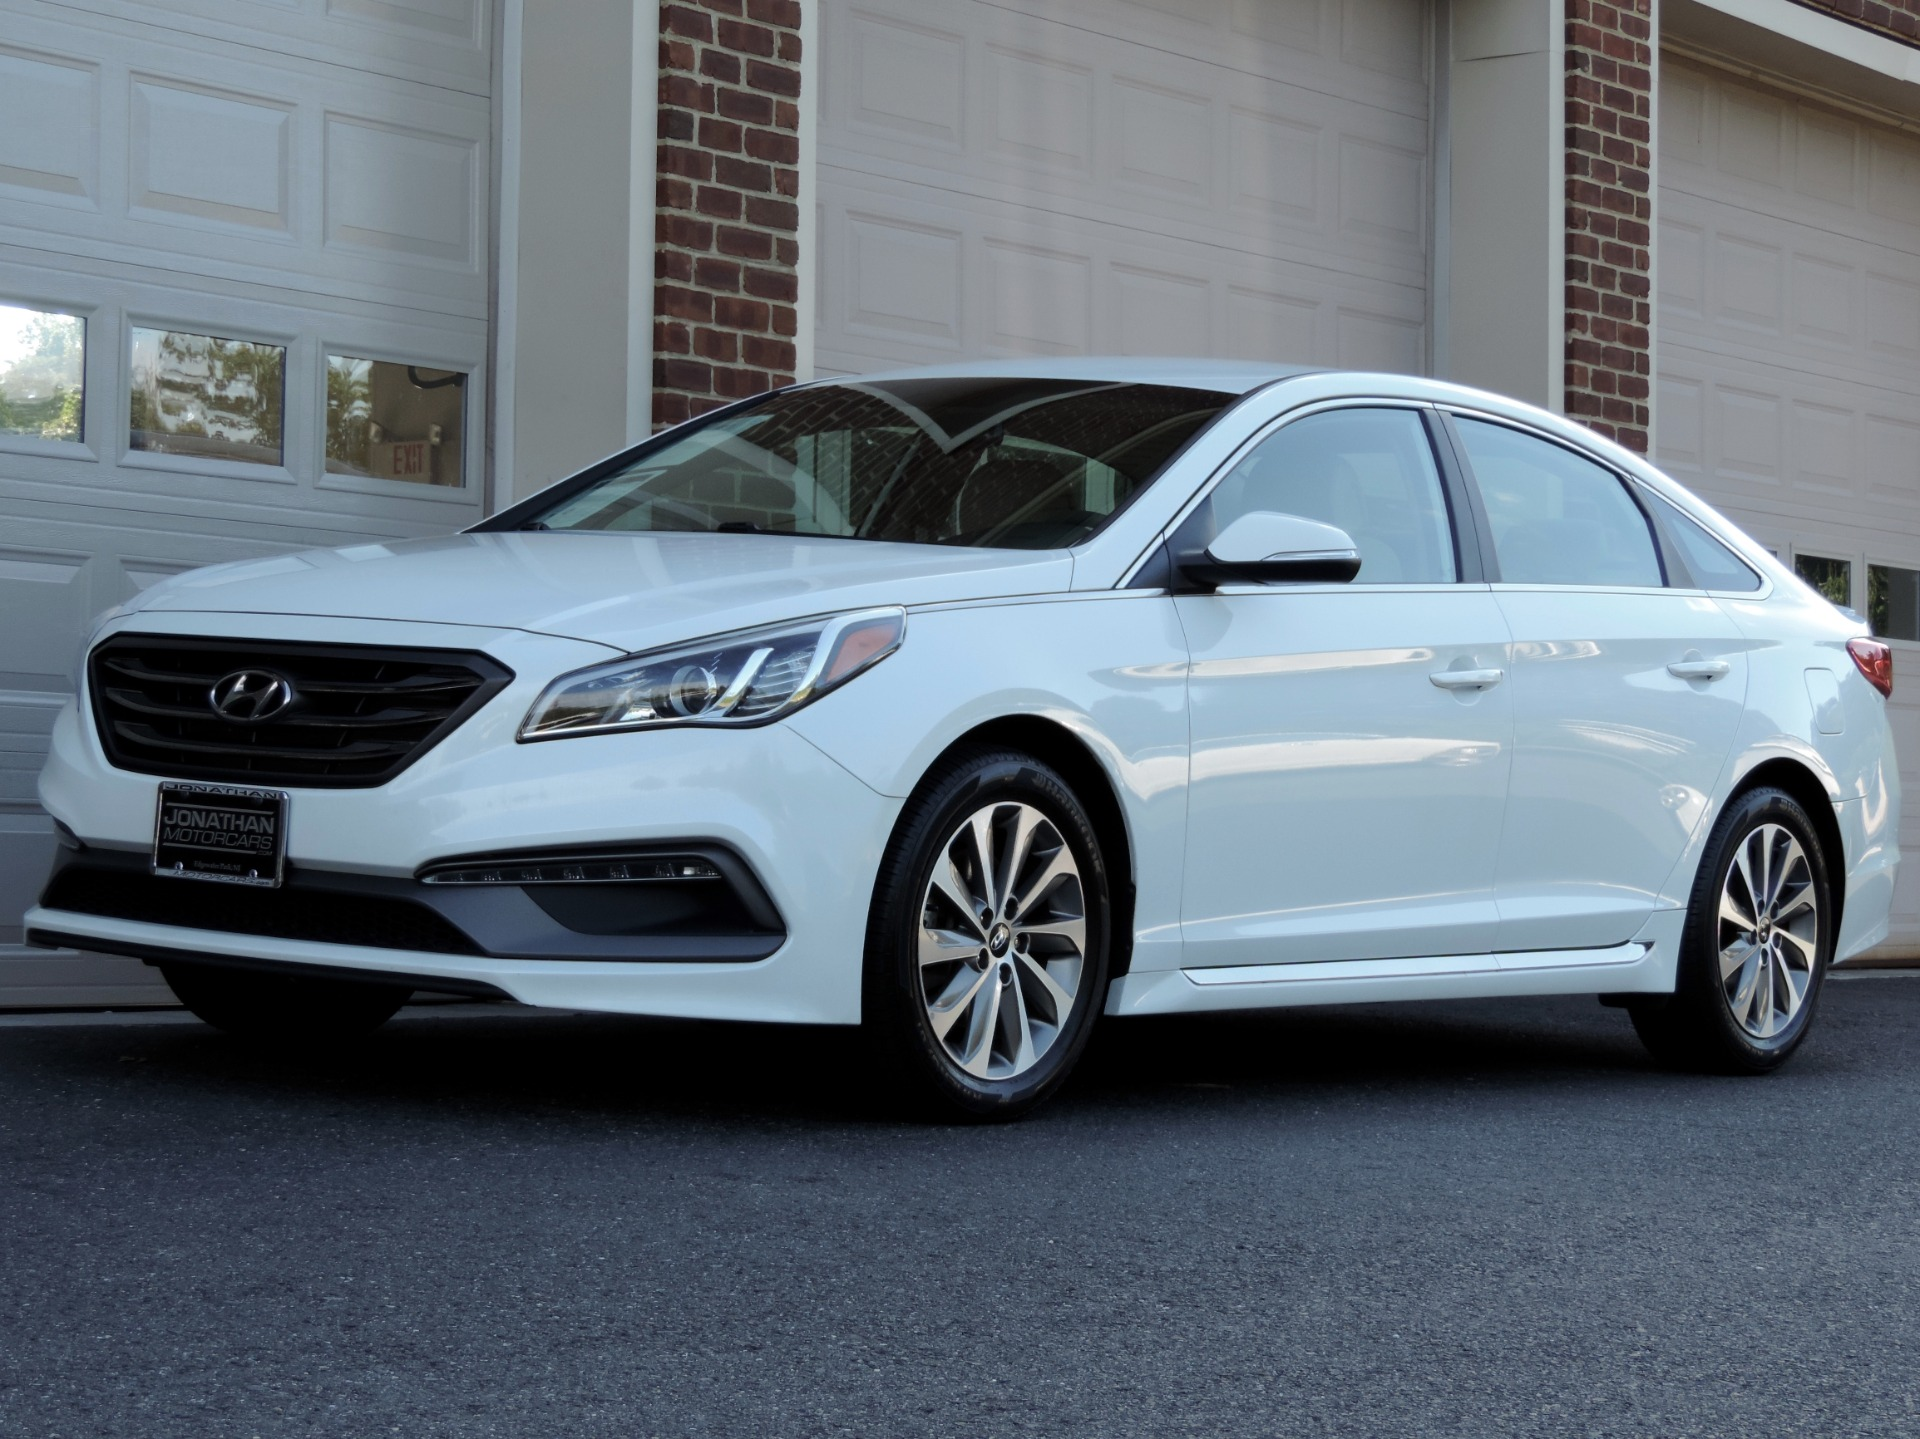 Used Cars For Sale In Nj >> 2015 Hyundai Sonata Sport Stock # 027931 for sale near Edgewater Park, NJ | NJ Hyundai Dealer